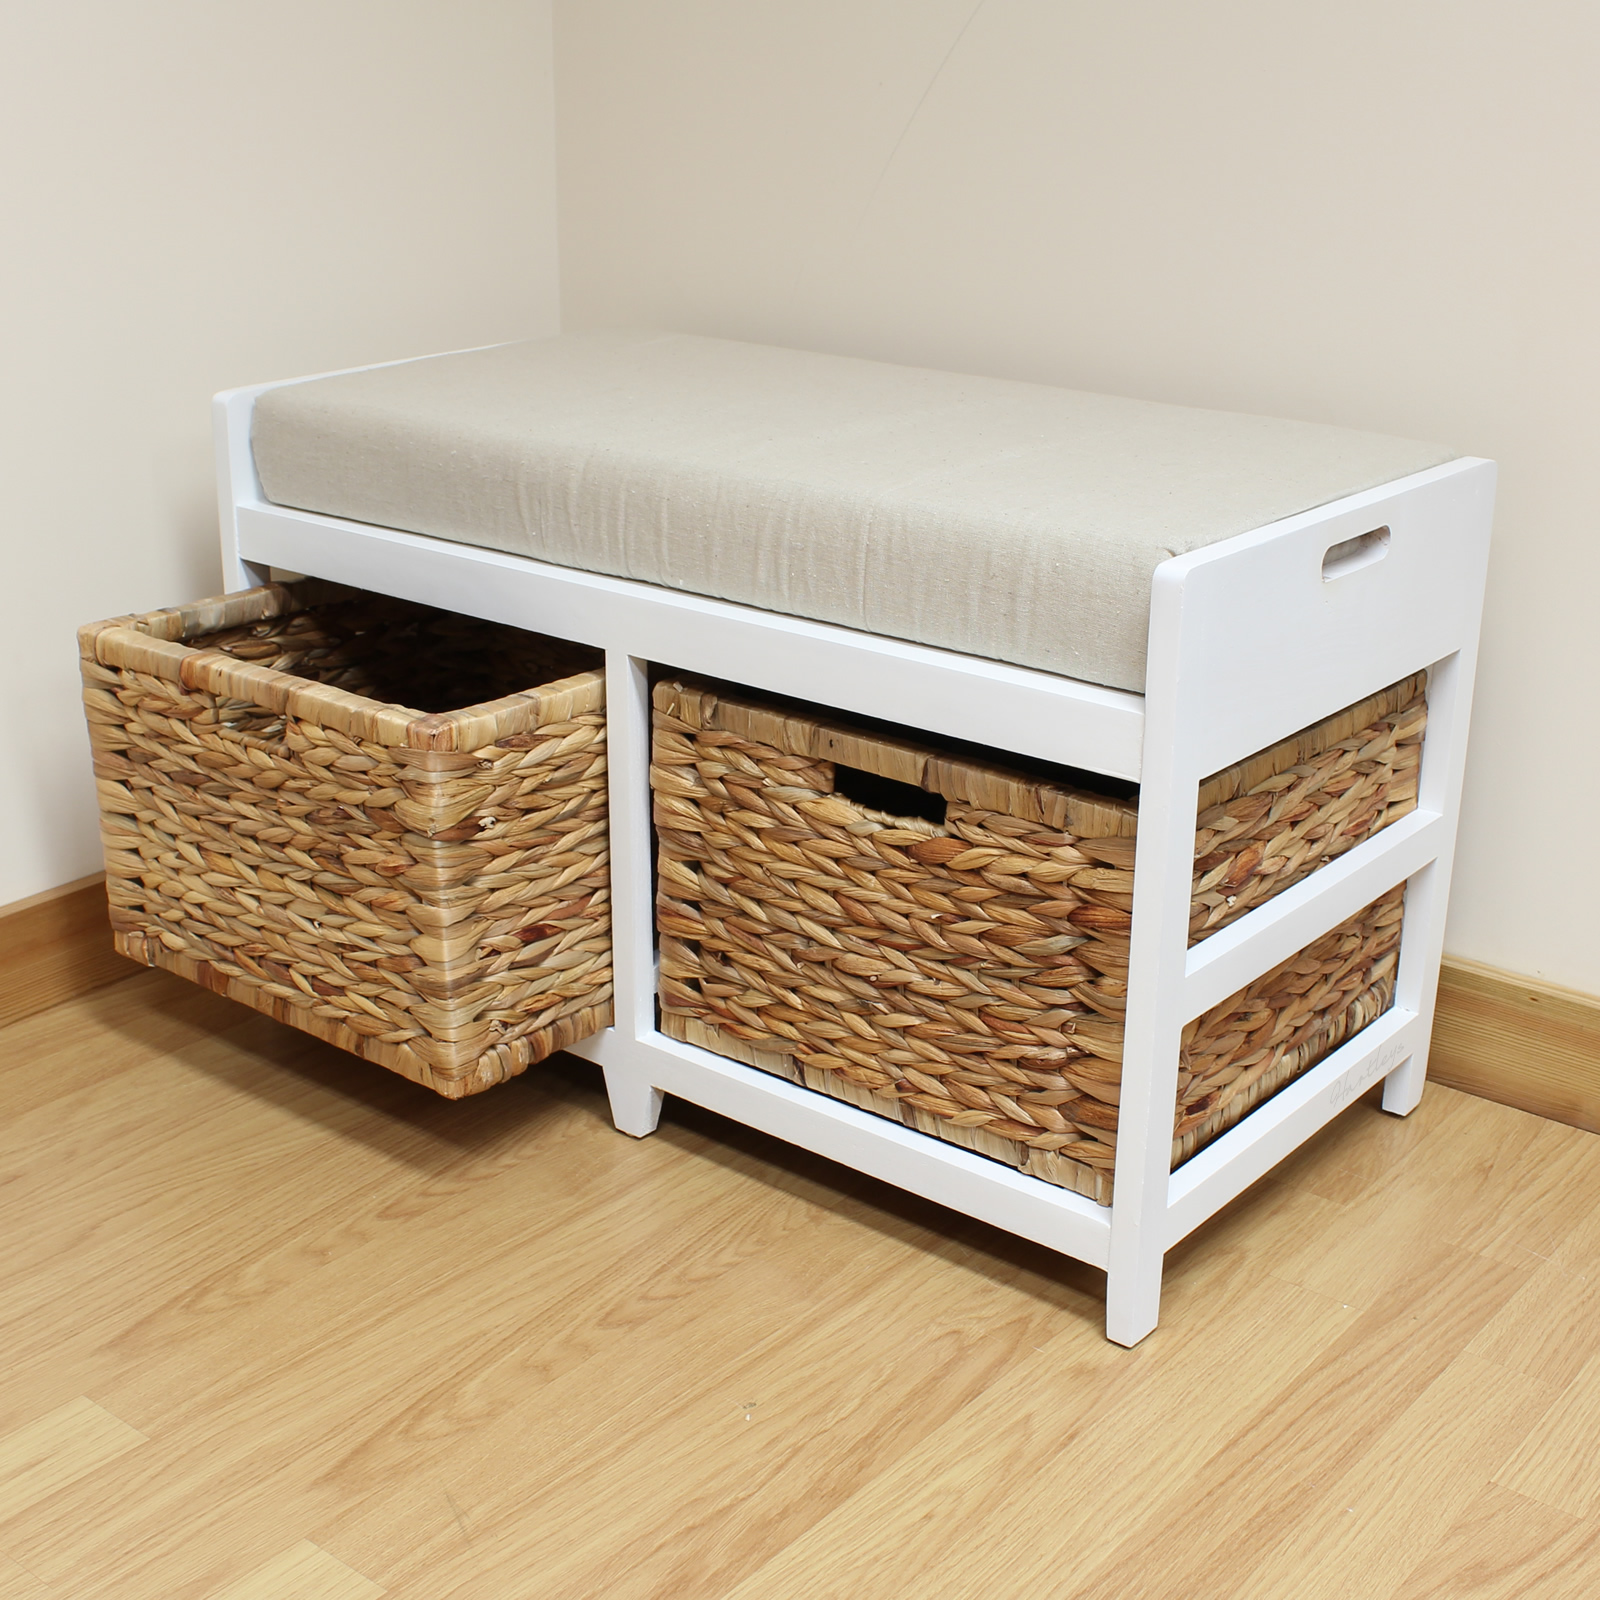 Storage bench cushion seat seagrass wicker baskets bathroom bedroom hallway Storage bench cushion